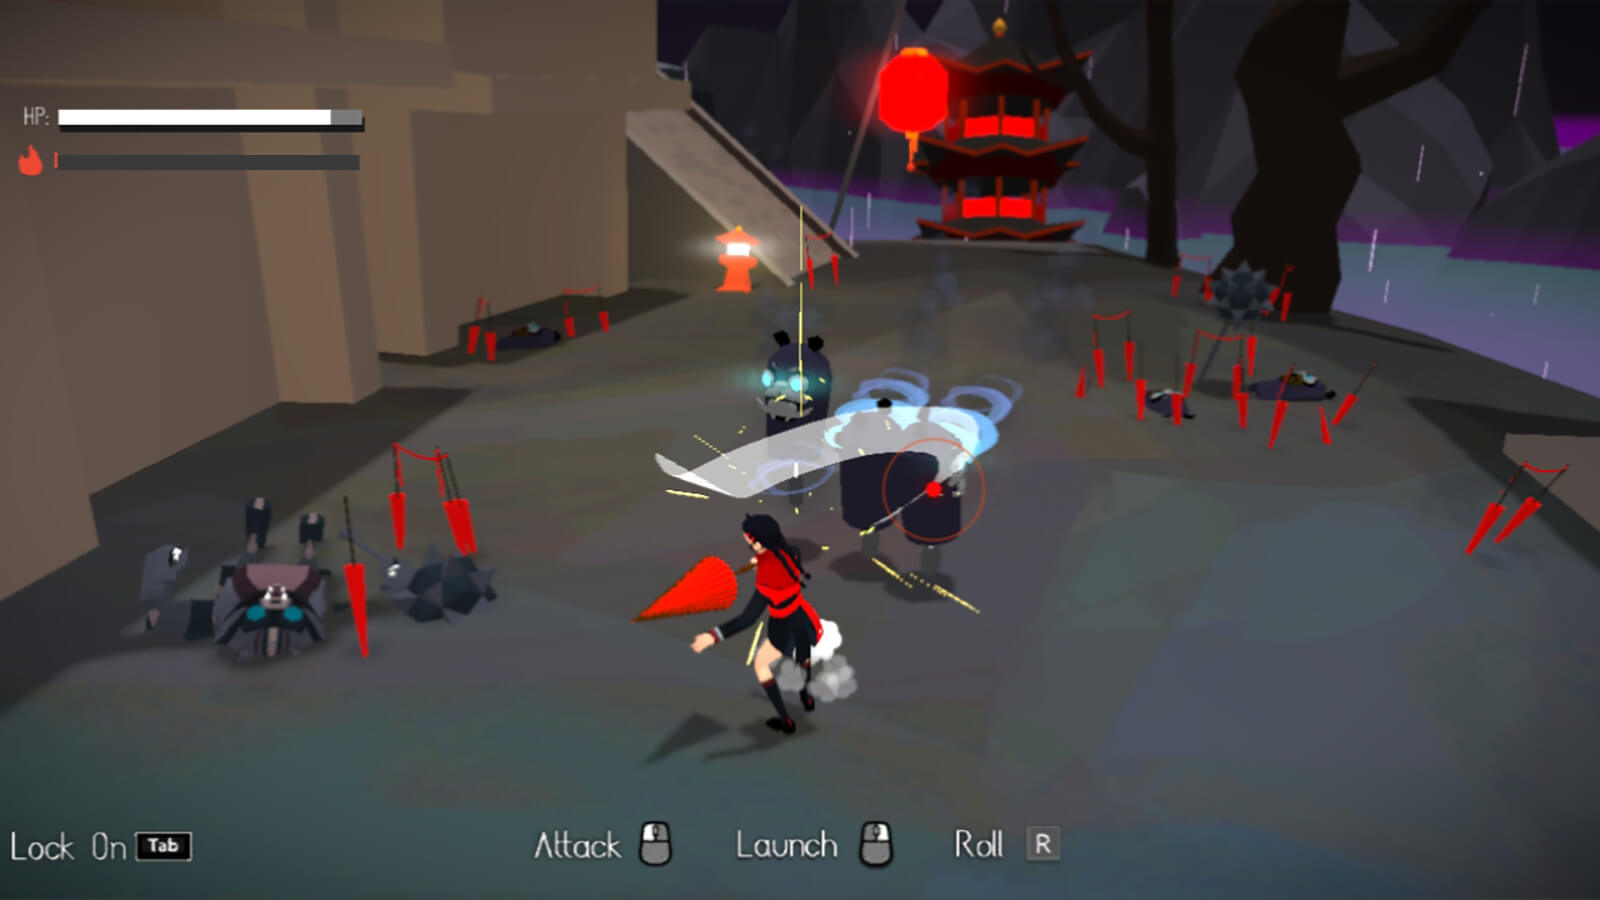 A girl in a red-and-black uniform swats at robotic beasts with her red umbrella on a dark, rainy battlefield.